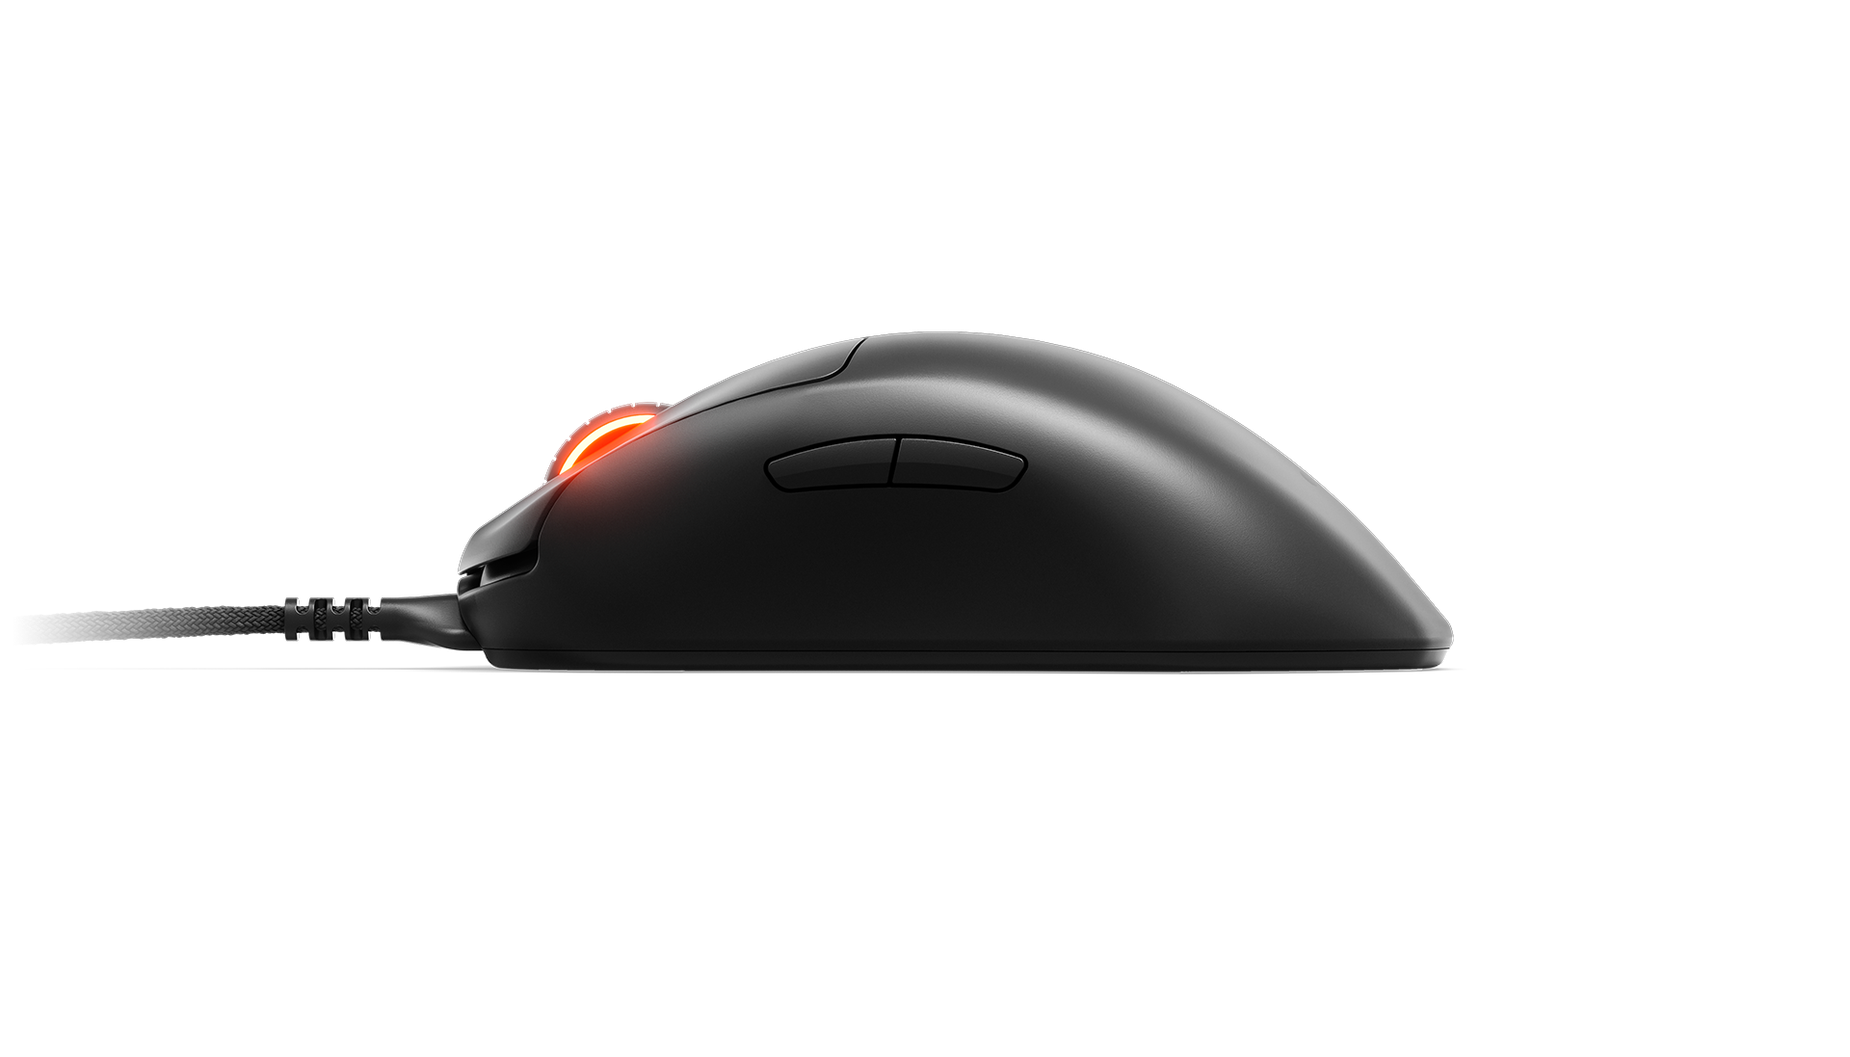 A side view of the Prime + mouse.